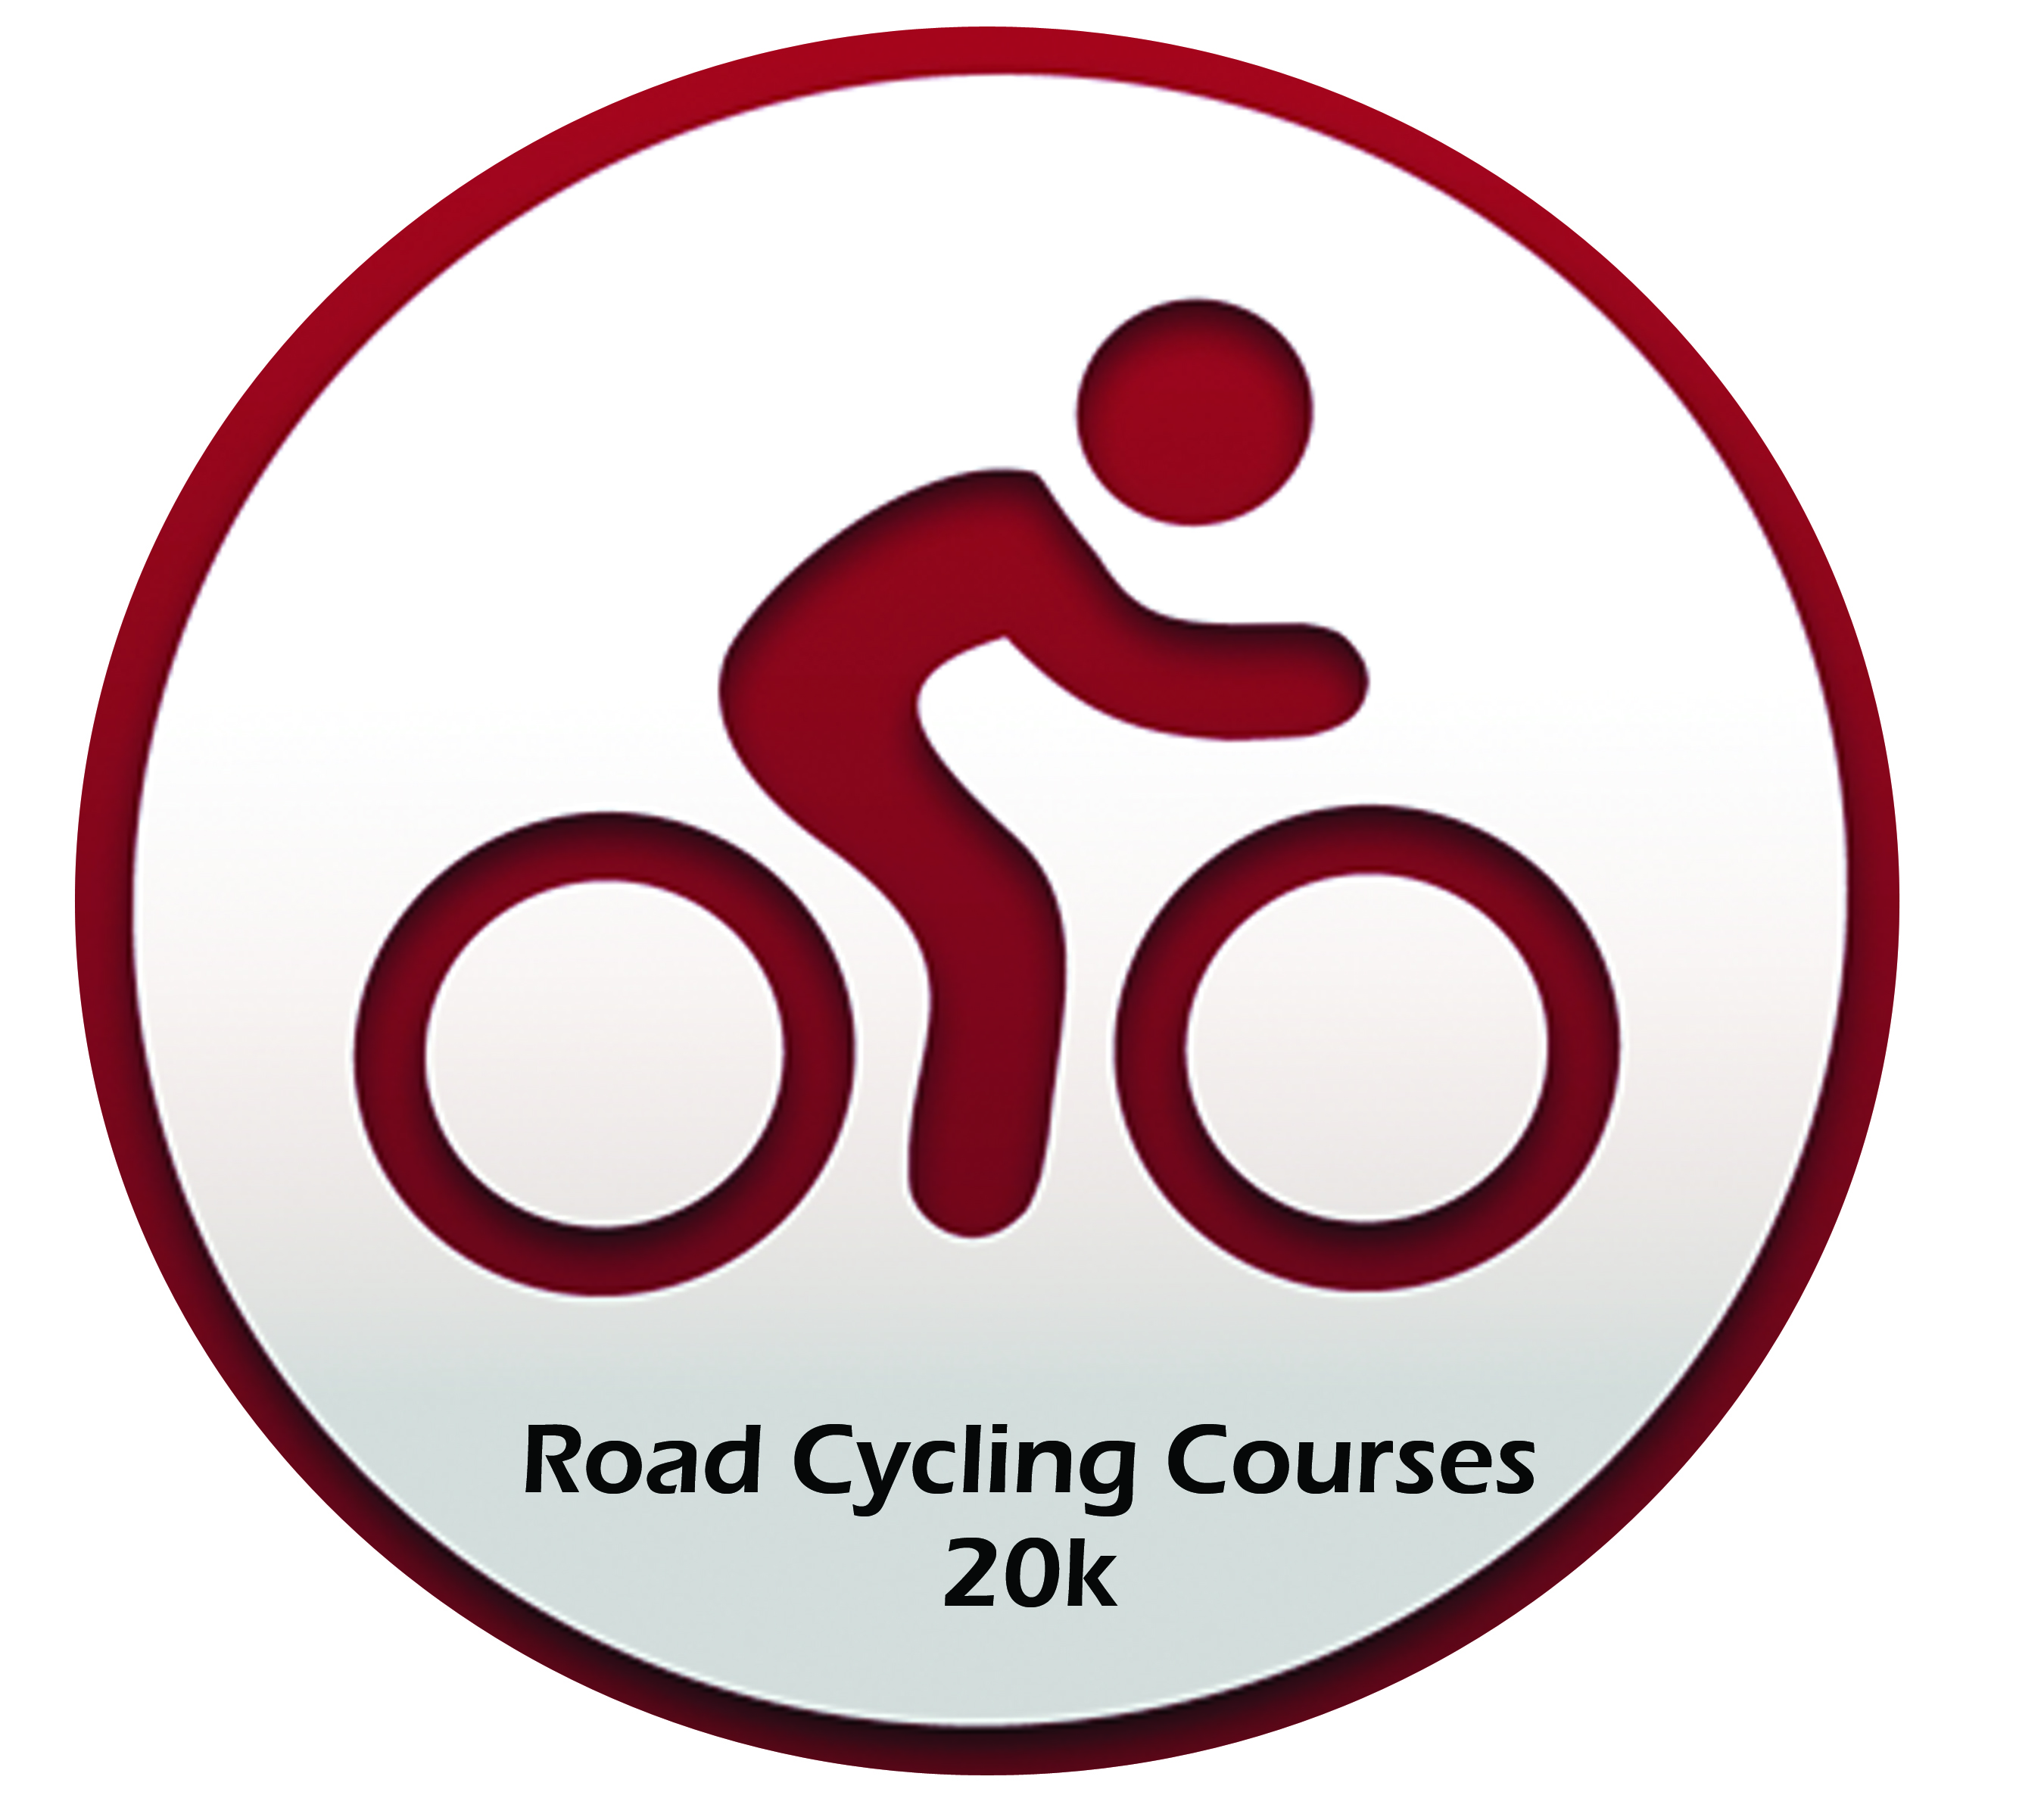 Road Cycling Course-20k.jpg